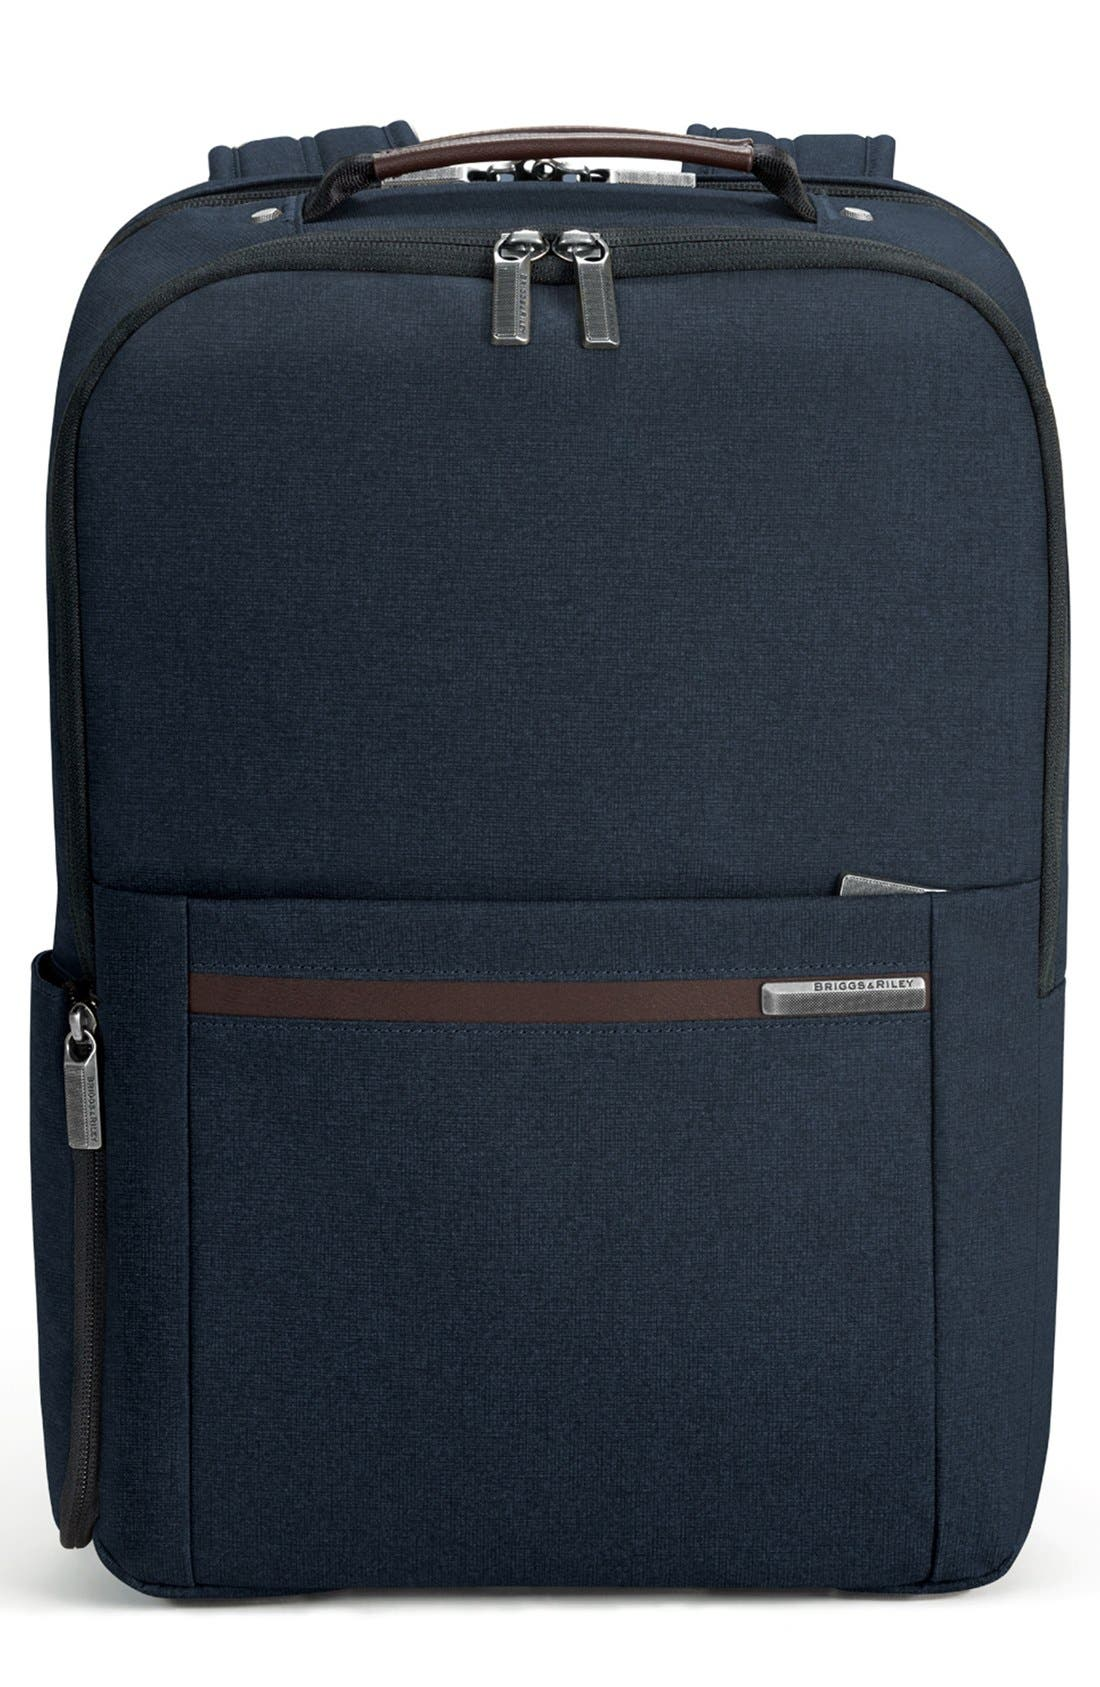 Kinzie Street Medium Backpack,                             Main thumbnail 1, color,                             Navy Blue